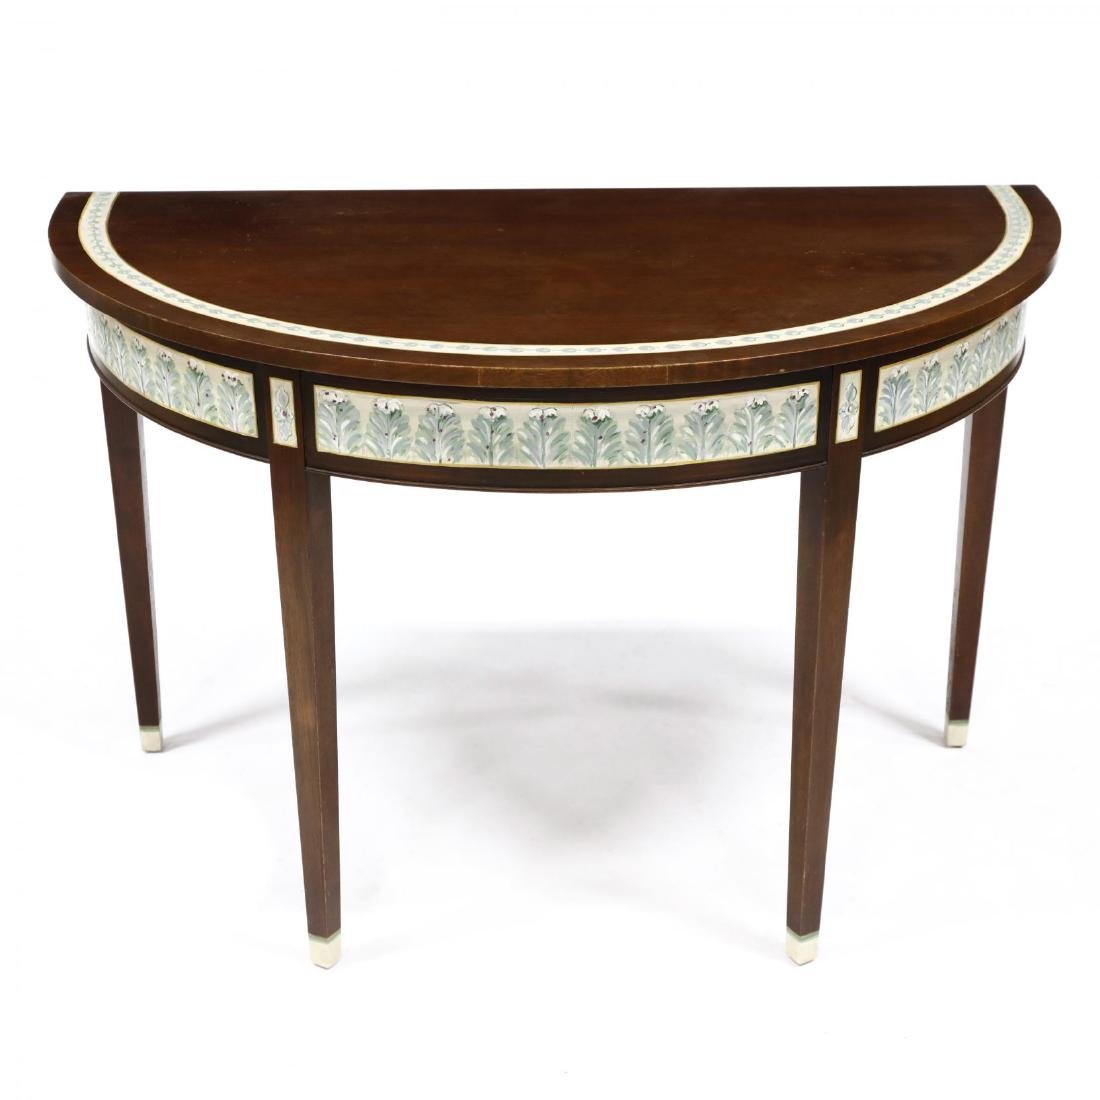 Contemporary Paint Decorated Demilune Table - 2